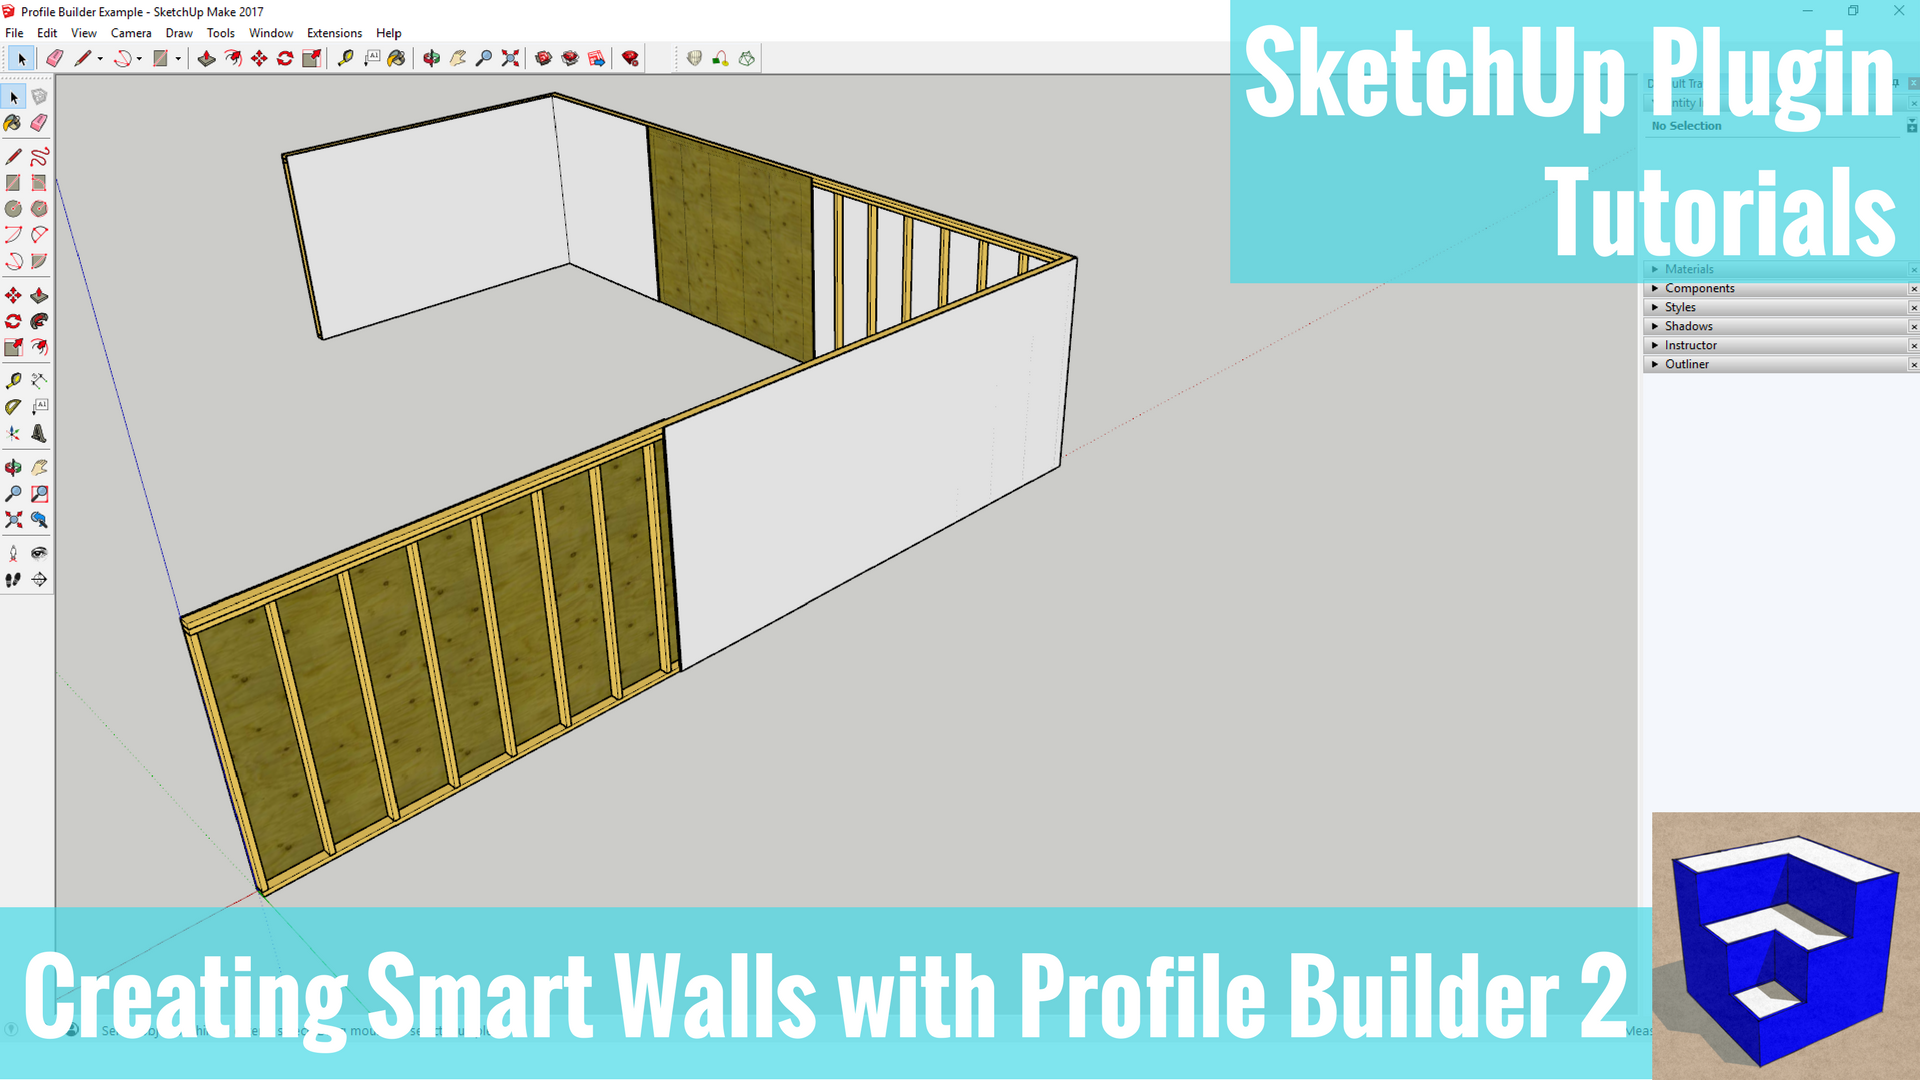 Profile Builder Tutorials - The SketchUp Essentials